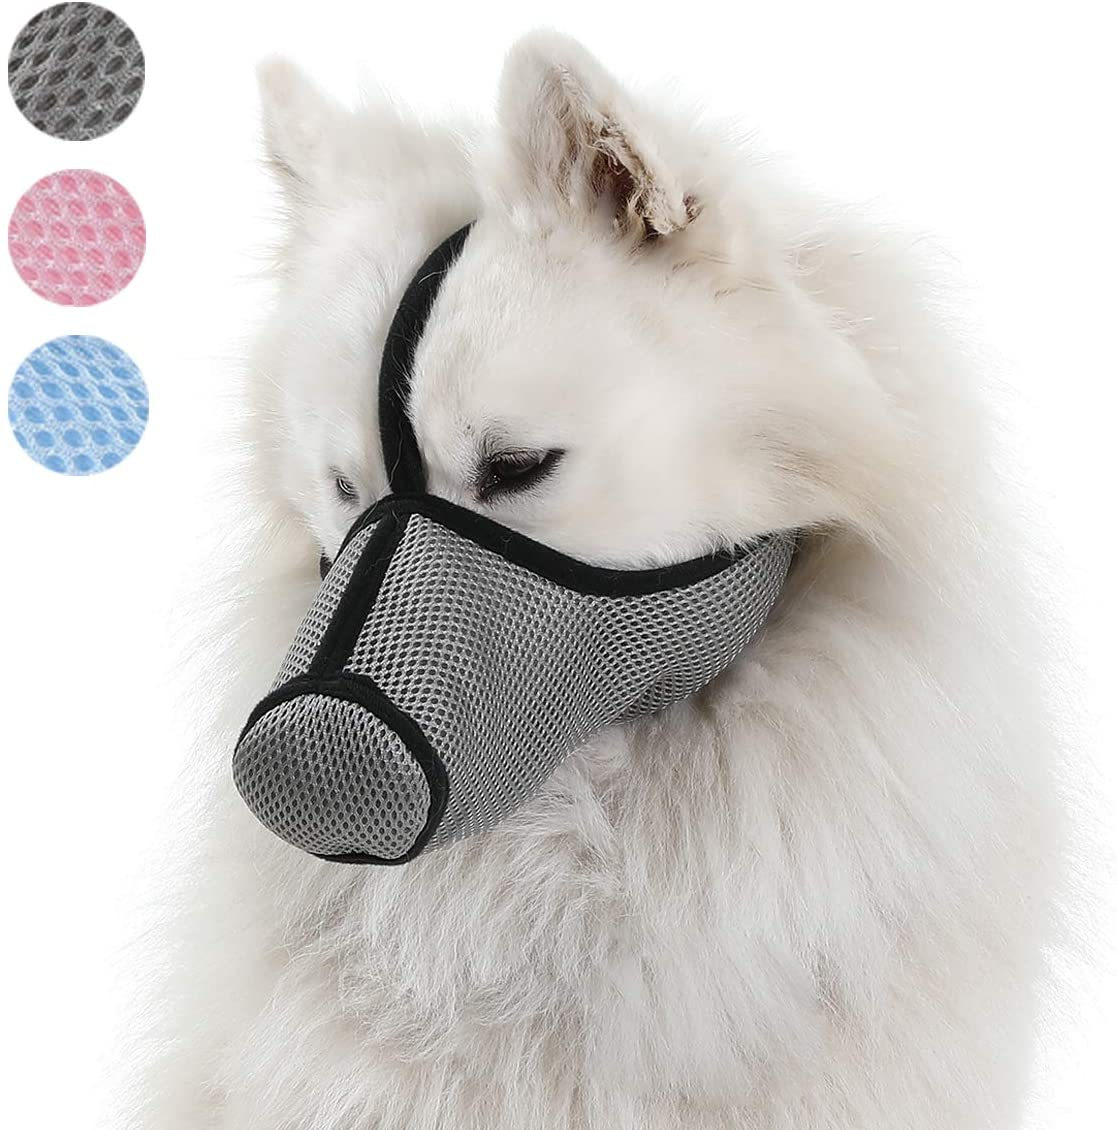 LUCKYPAW Dog Muzzle Protective Mask for Small to Large Dogs Anti-Barking Biting Chewing, Filter Air Pollutants Anti Fog/Anti Dust/Anti Secondhand Smoke, Breathable Adjustable Dog Respirator Mask